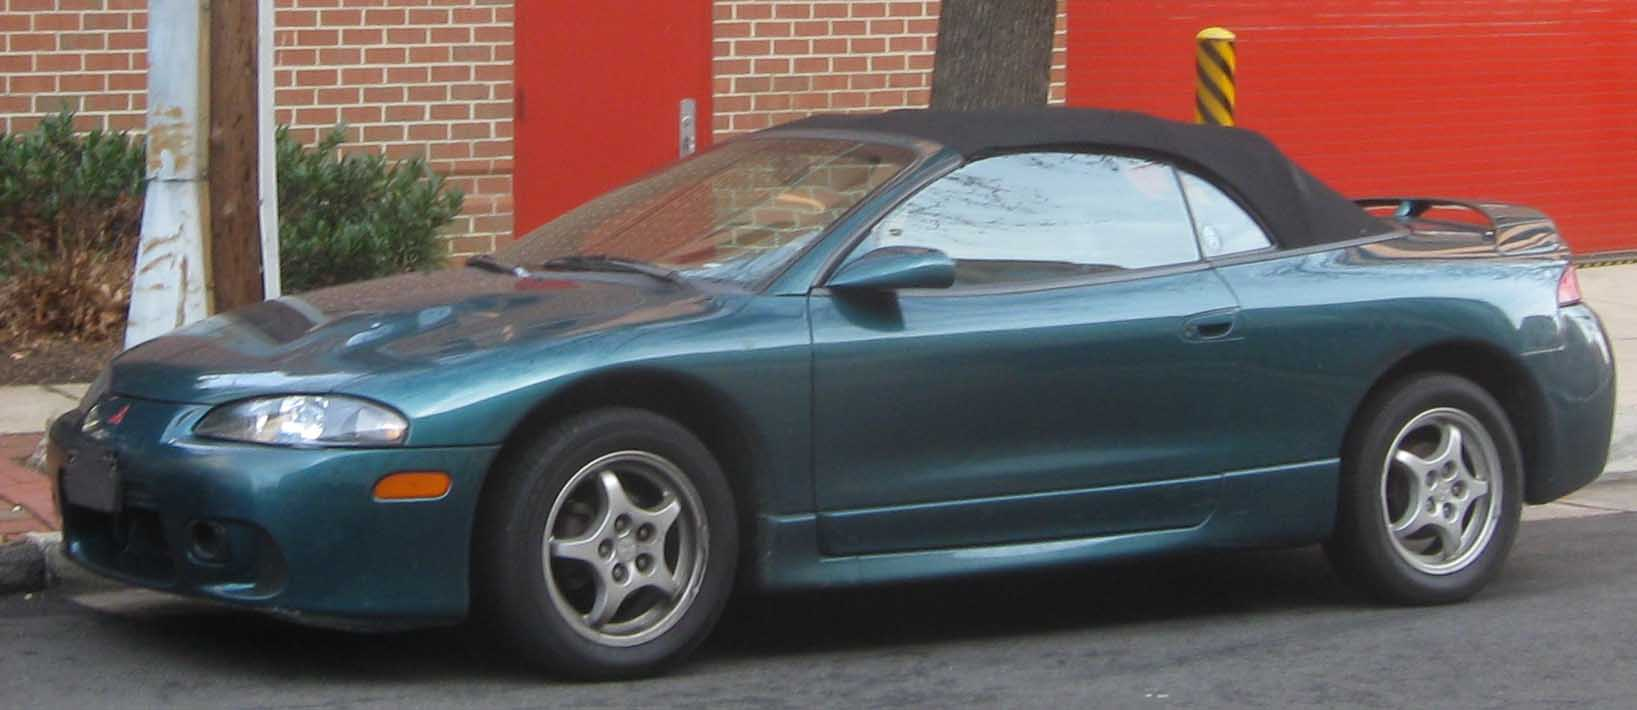 File:97-99 Mitsubishi Eclipse convertible.jpg - Wikimedia Commons